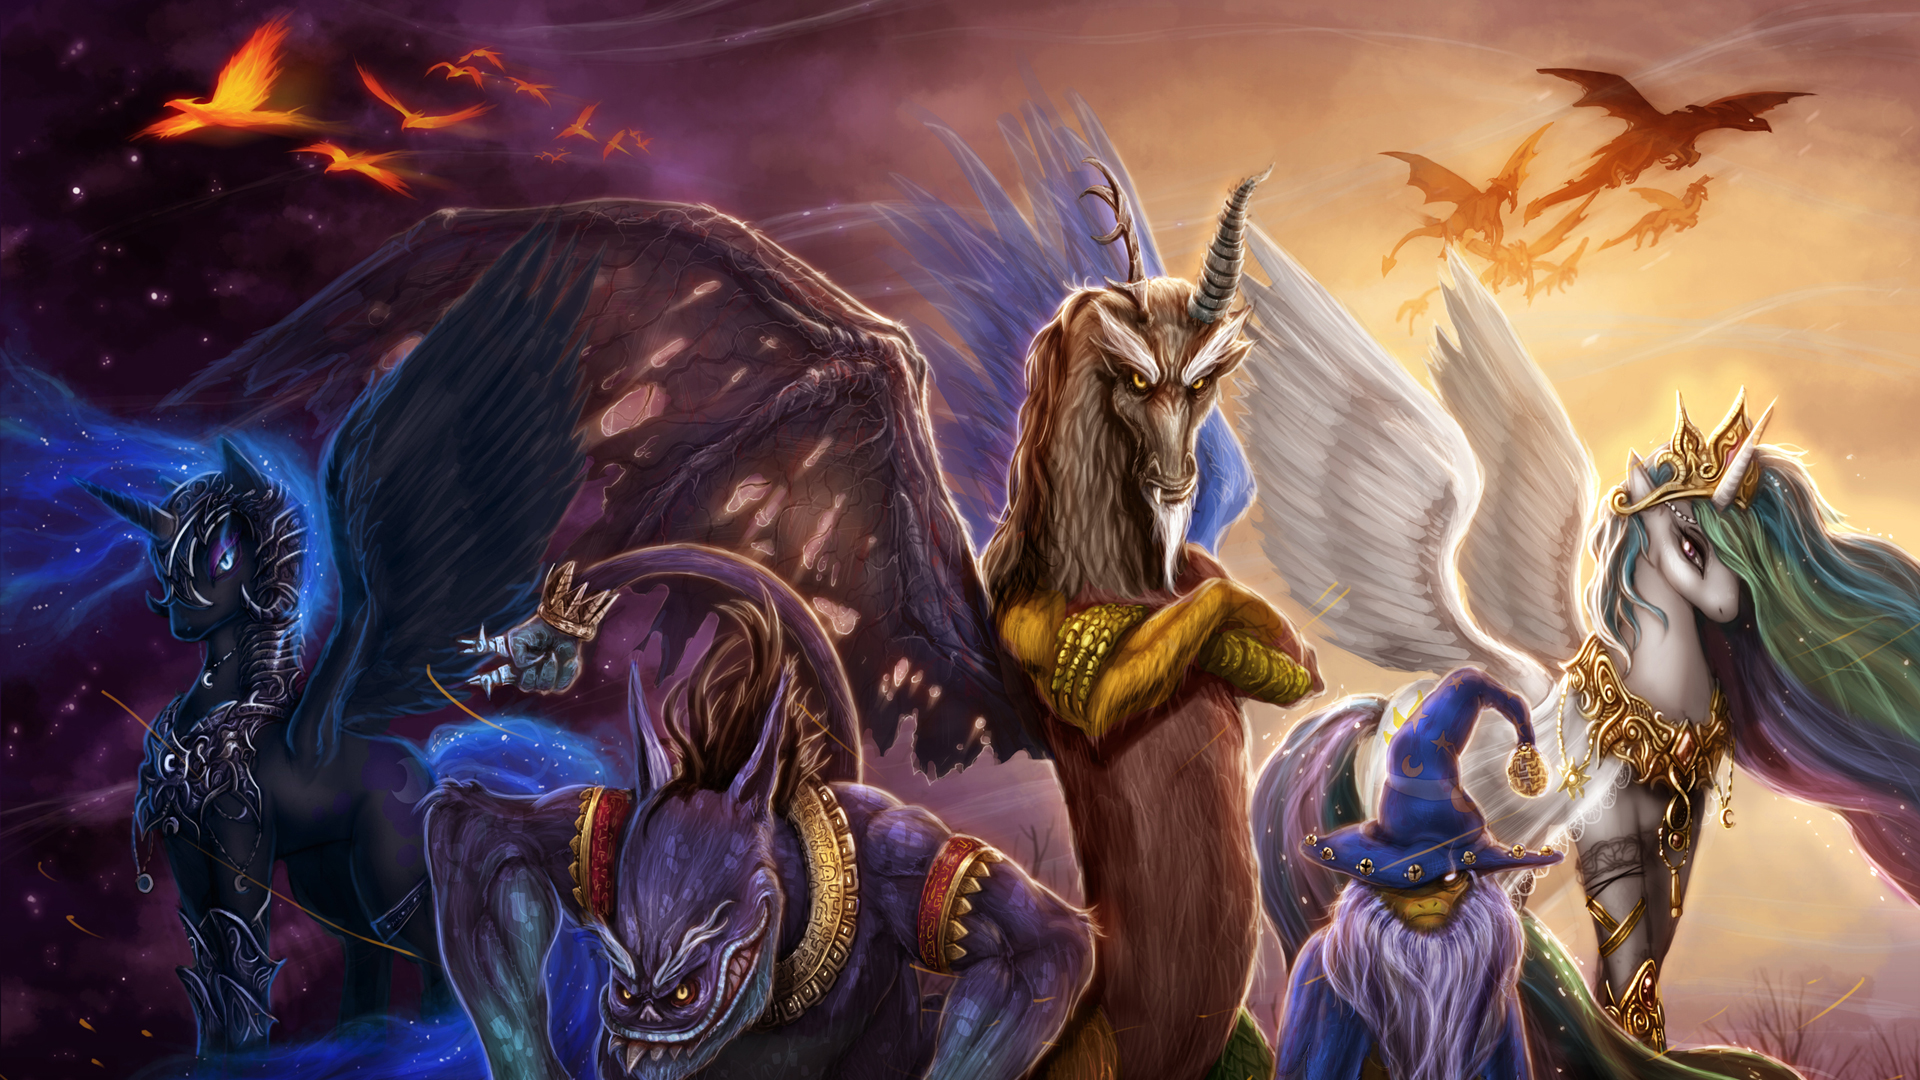 legends_of_the_equestria_by_ziomwallpape